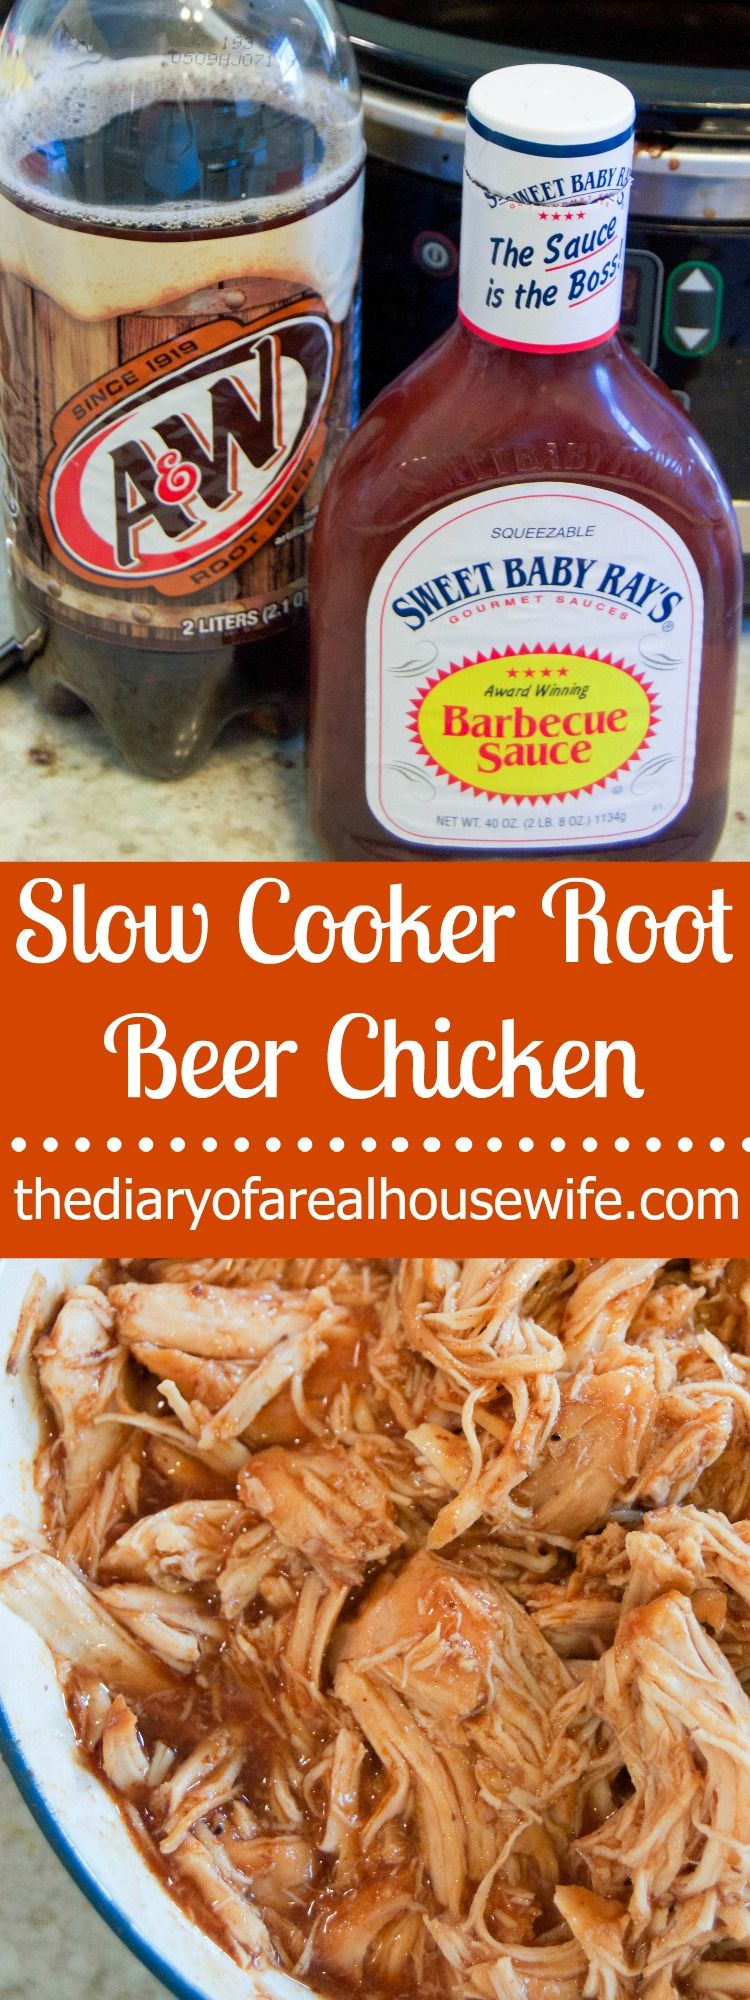 This Slow Cooker Root Beer Chicken is tender and sweet and makes the perfect shredded chicken sandwich!